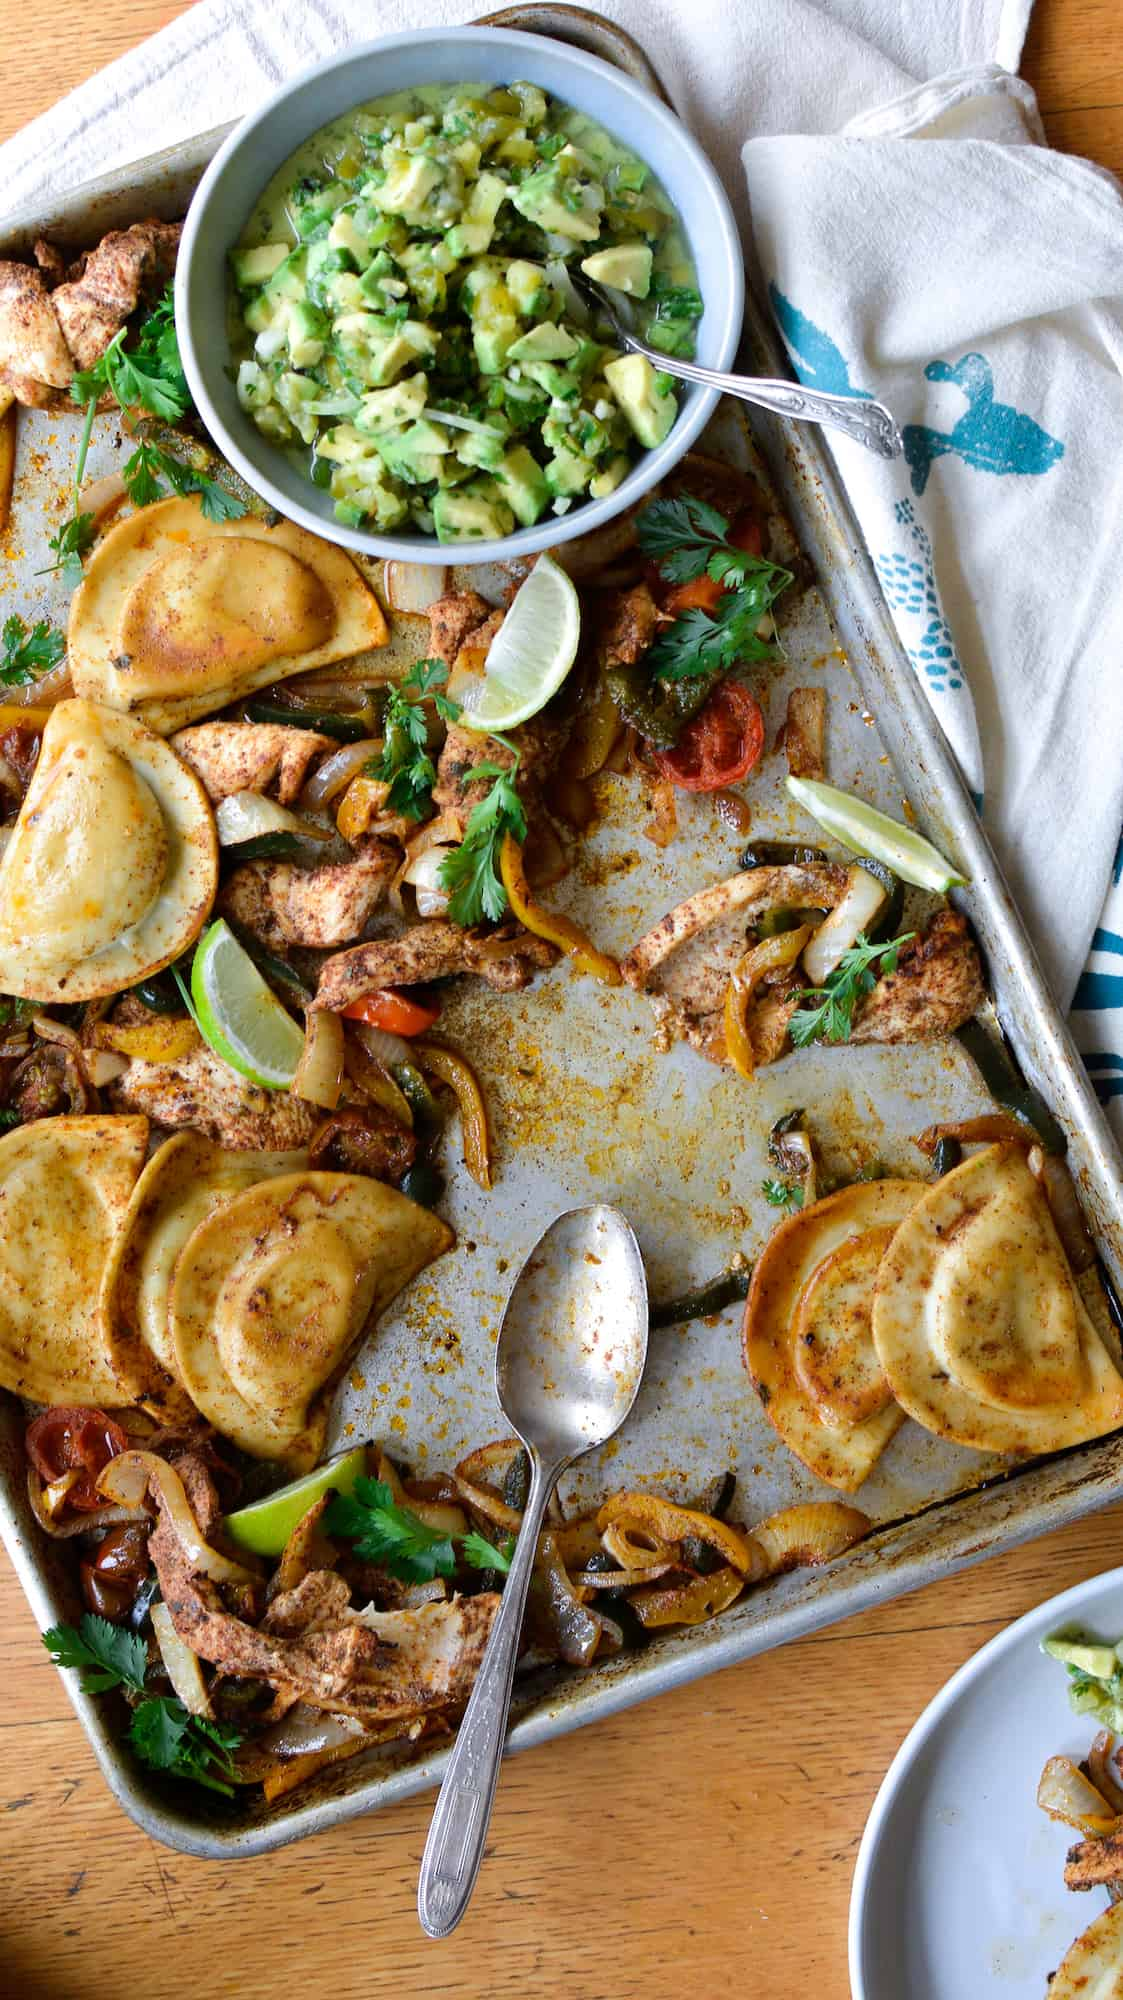 Overhead image of a baking sheet with strips of chicken, peppers, Pierogies, lime wedges, and a bowl of avocado salsa on it.